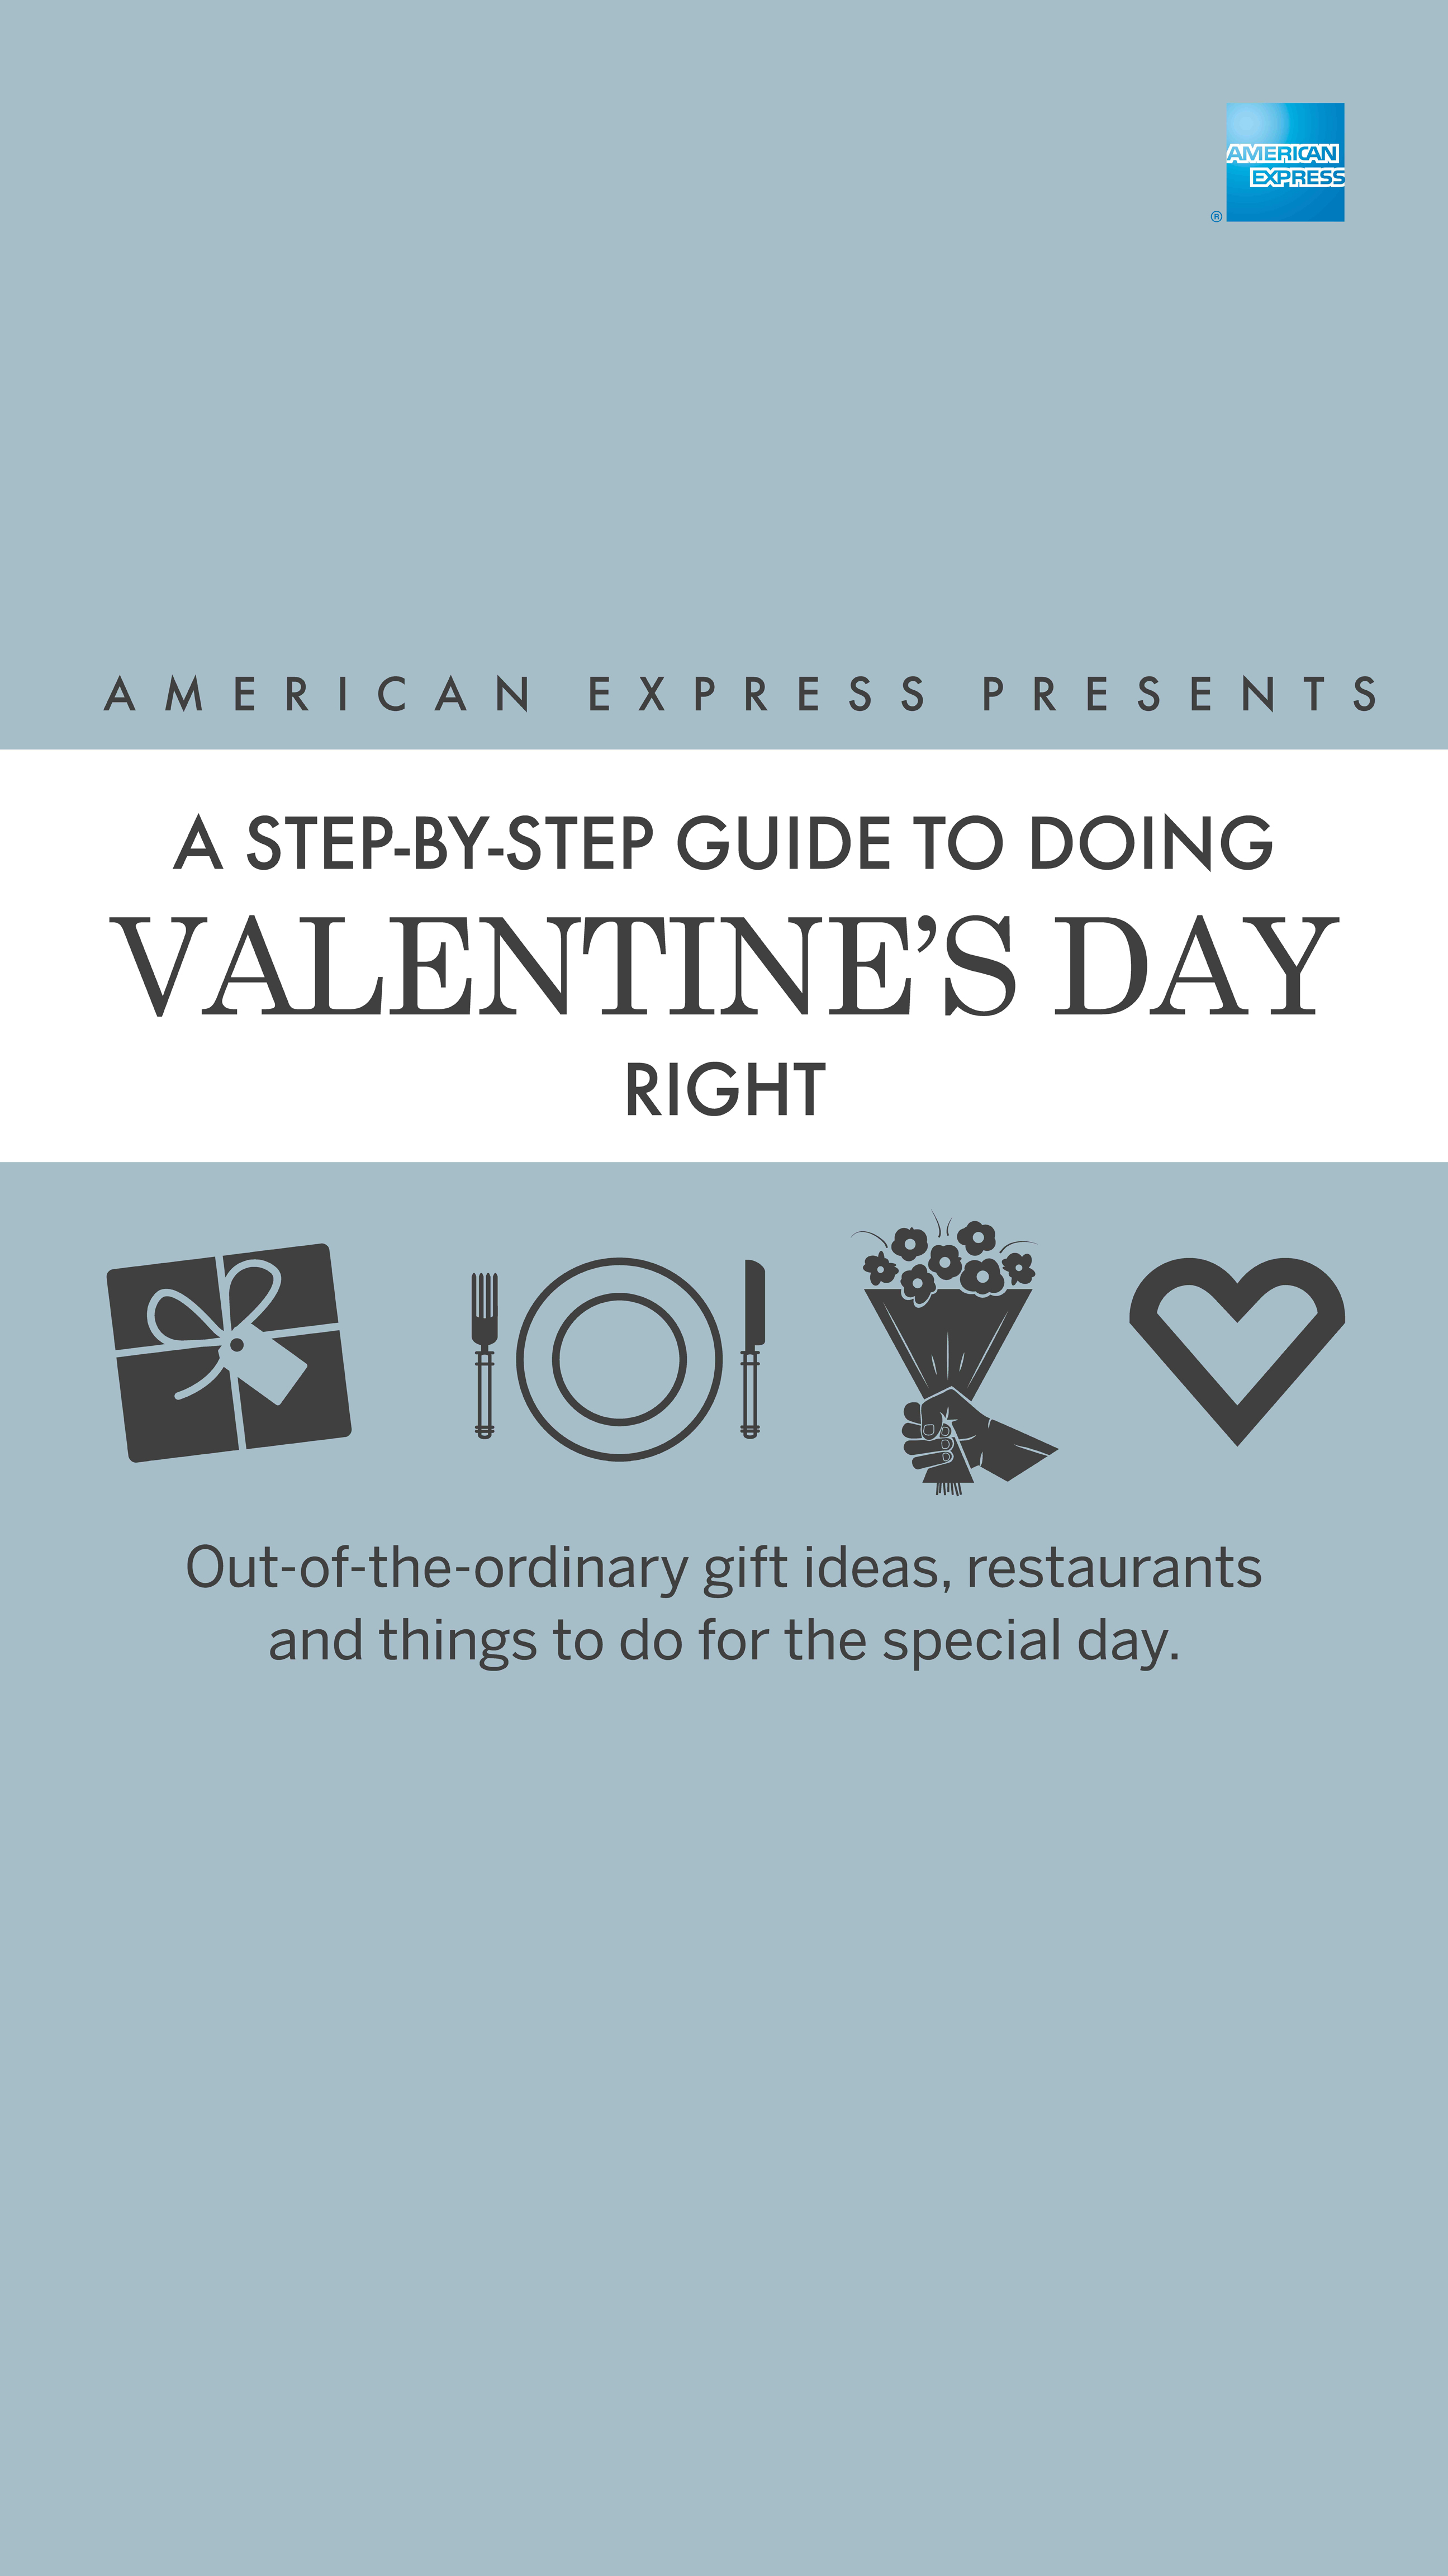 AMEX Valentine's Day Guide